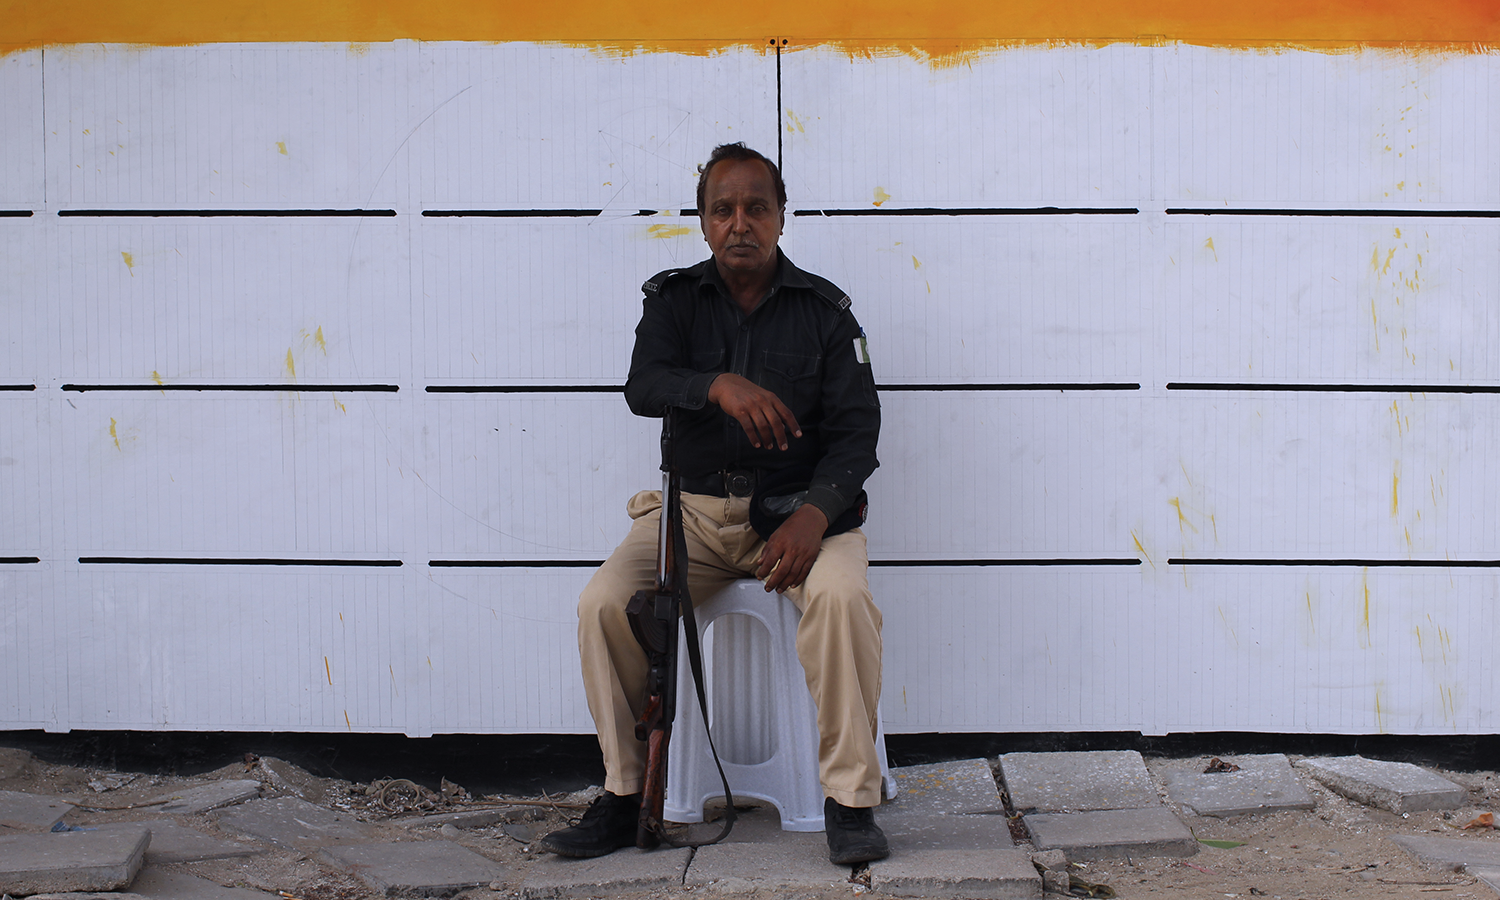 5562cff4a9eac?r1187383807 - When hate on the wall disappears in Karachi